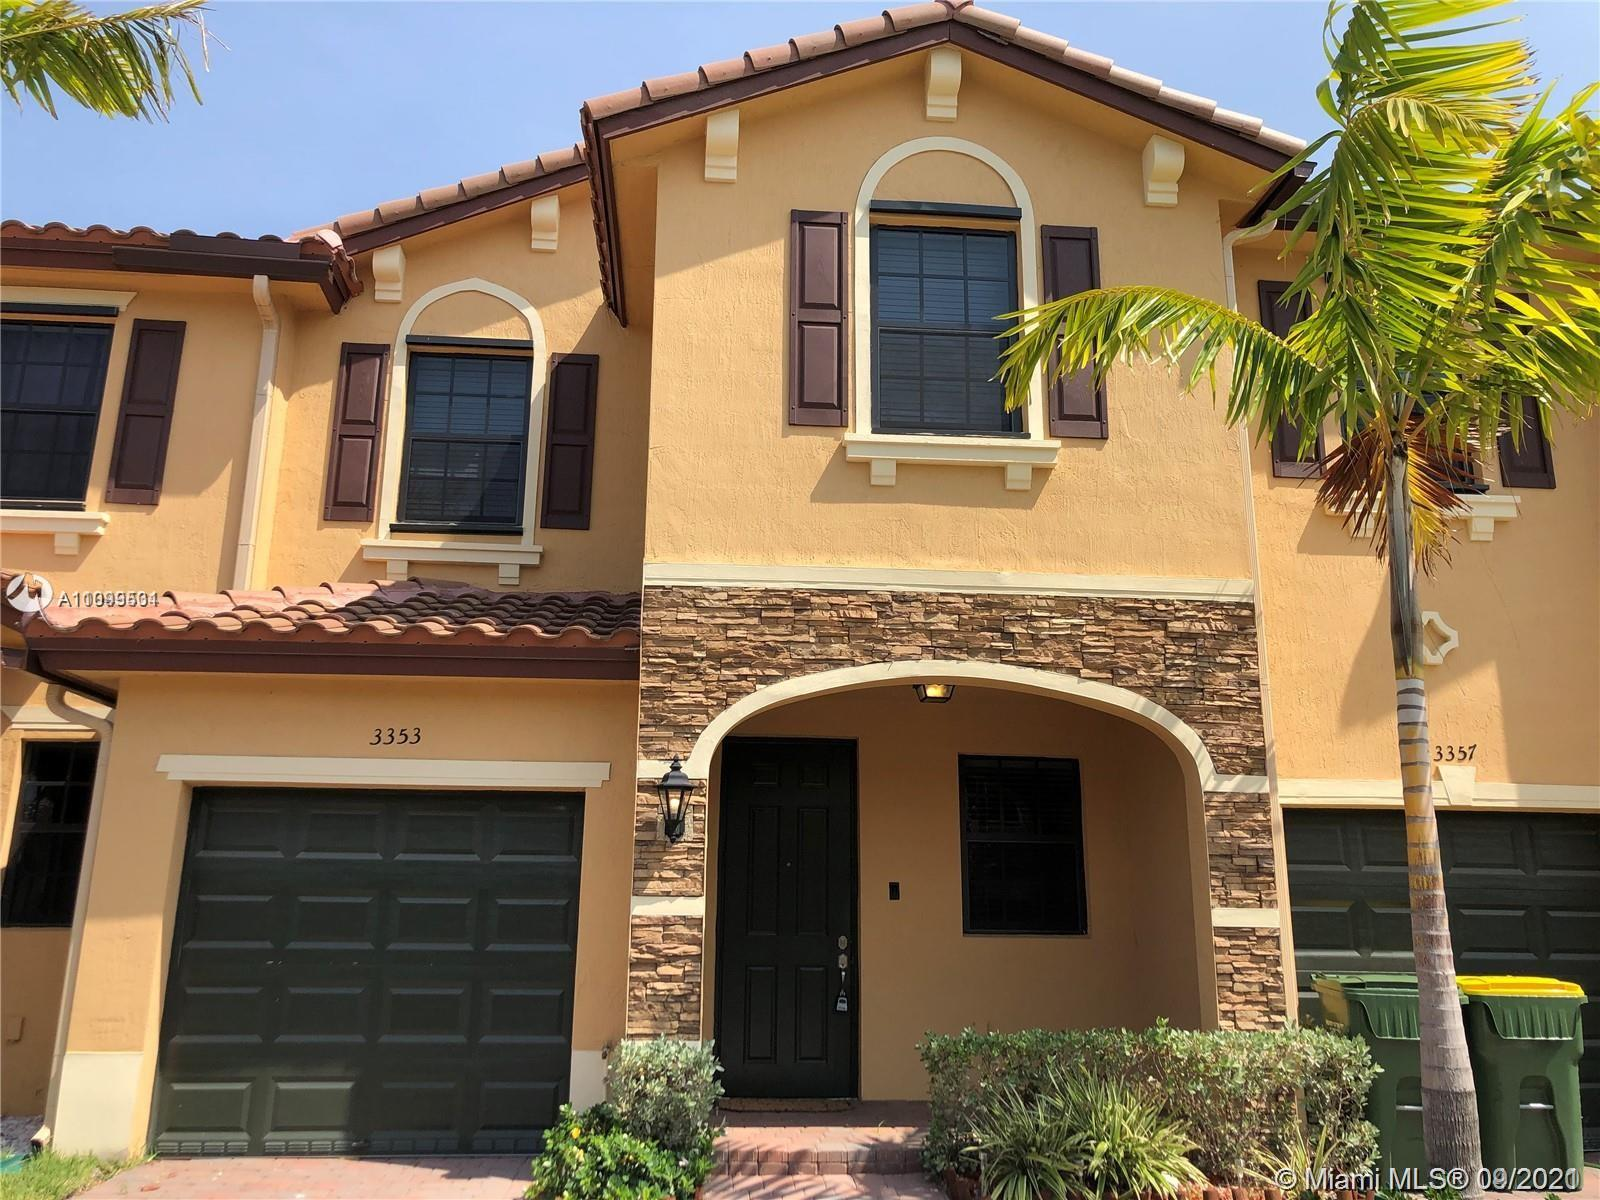 Beautiful large townhome with an open concept kitchen. The appliances are stainless steel and quartz counter tops, washer and dyer upstairs and tankless electric water heater Tile on the first floor and carpet on the second floor. Private backyard and 1 car garage space